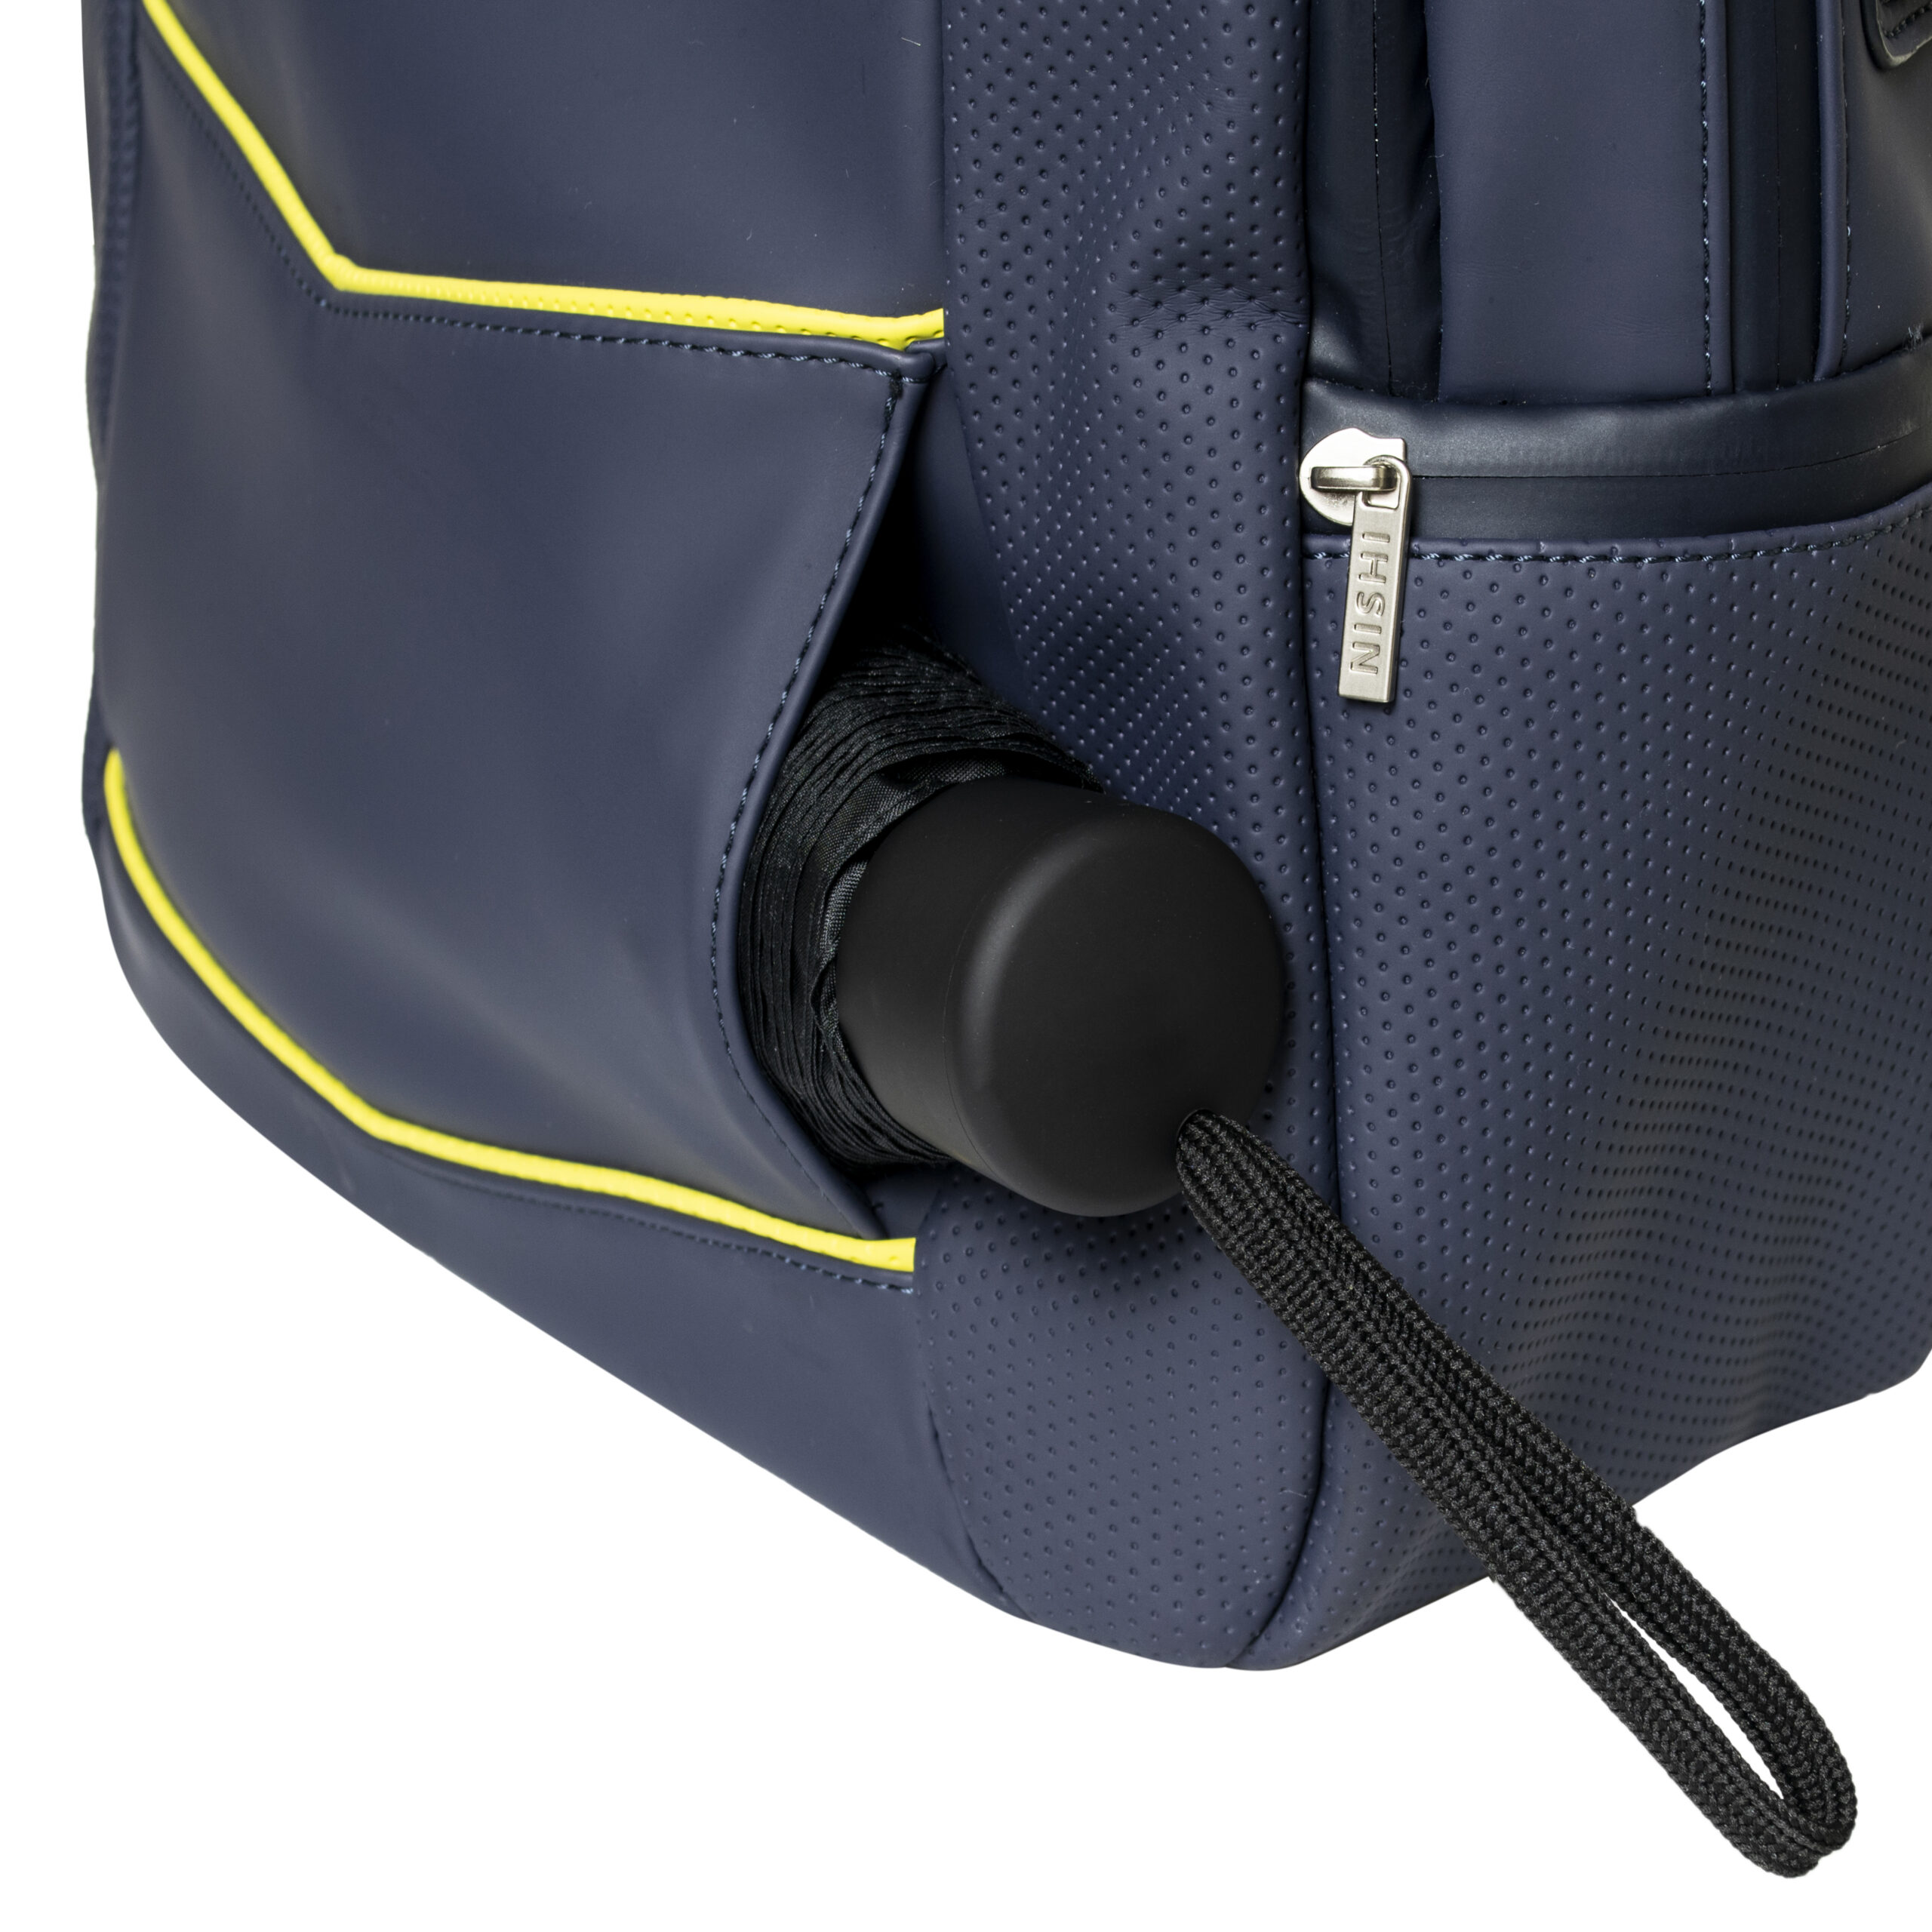 Business backpack - Umbrella section